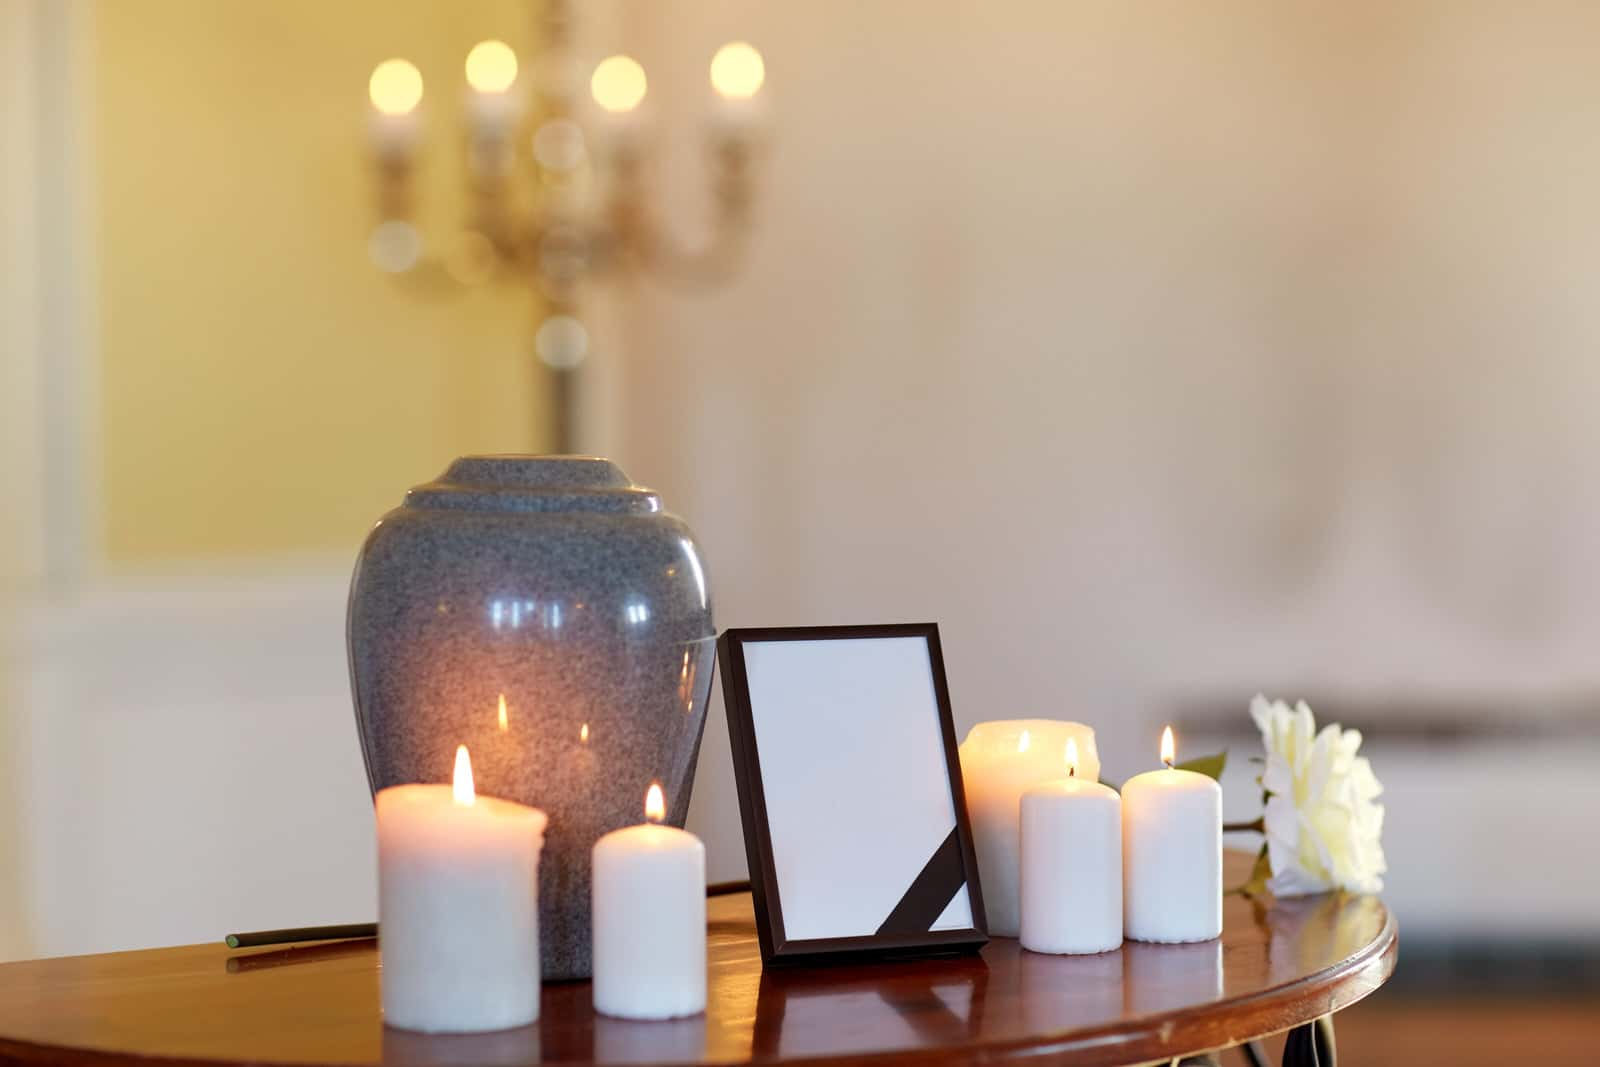 Cremation costs in Michigan start at $995